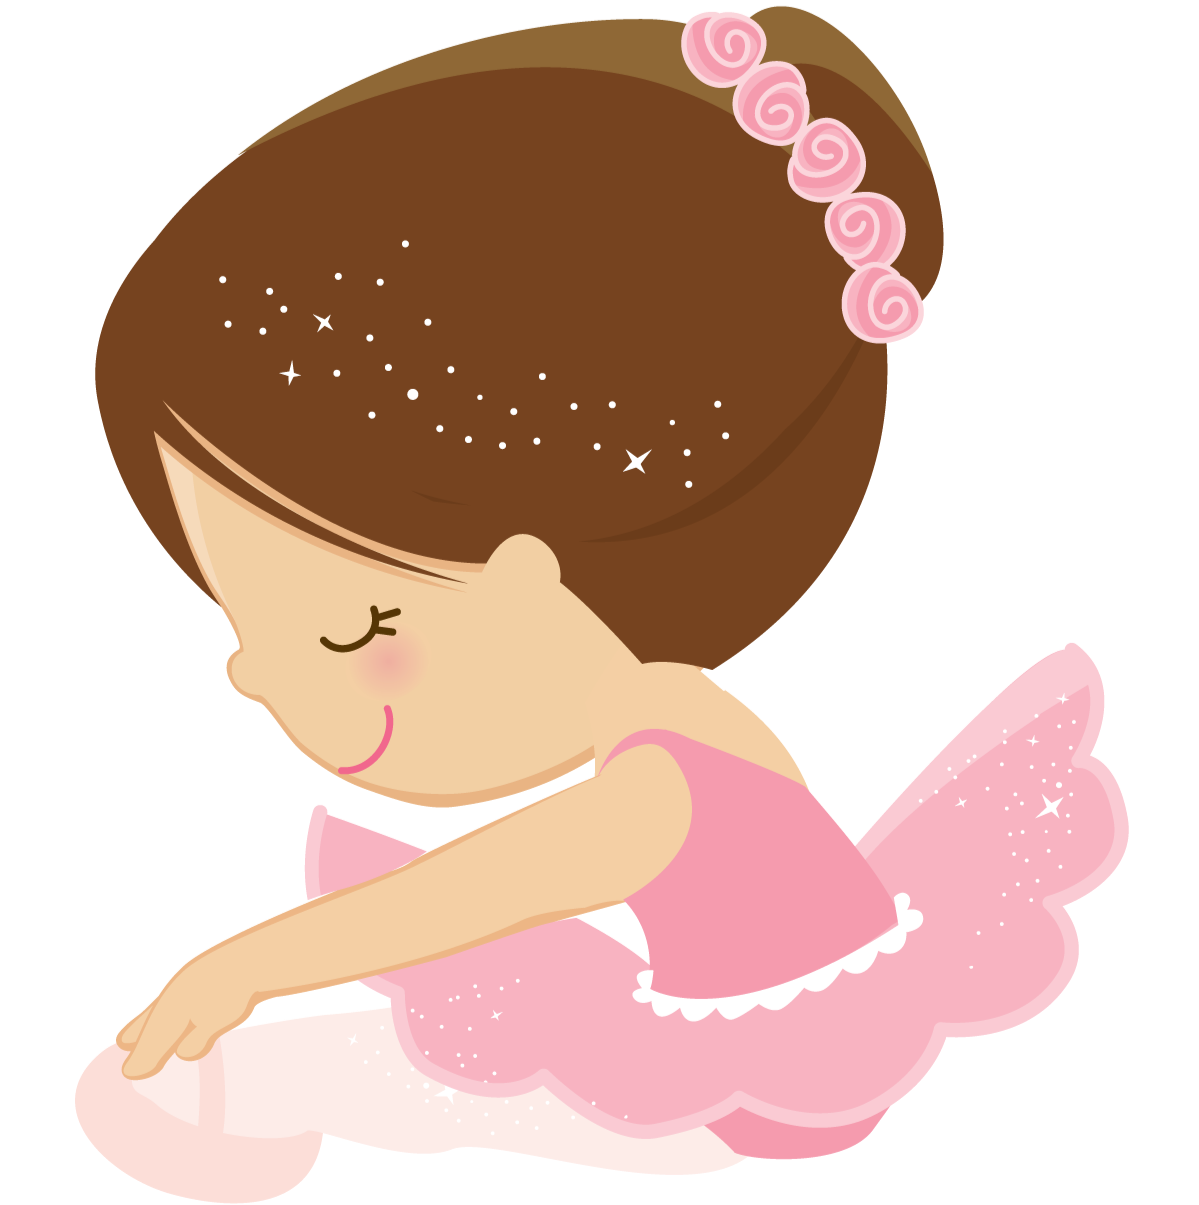 Baby ballerina tutu clipart picture black and white stock Free Ballerina Tutu Cliparts, Download Free Clip Art, Free Clip Art ... picture black and white stock